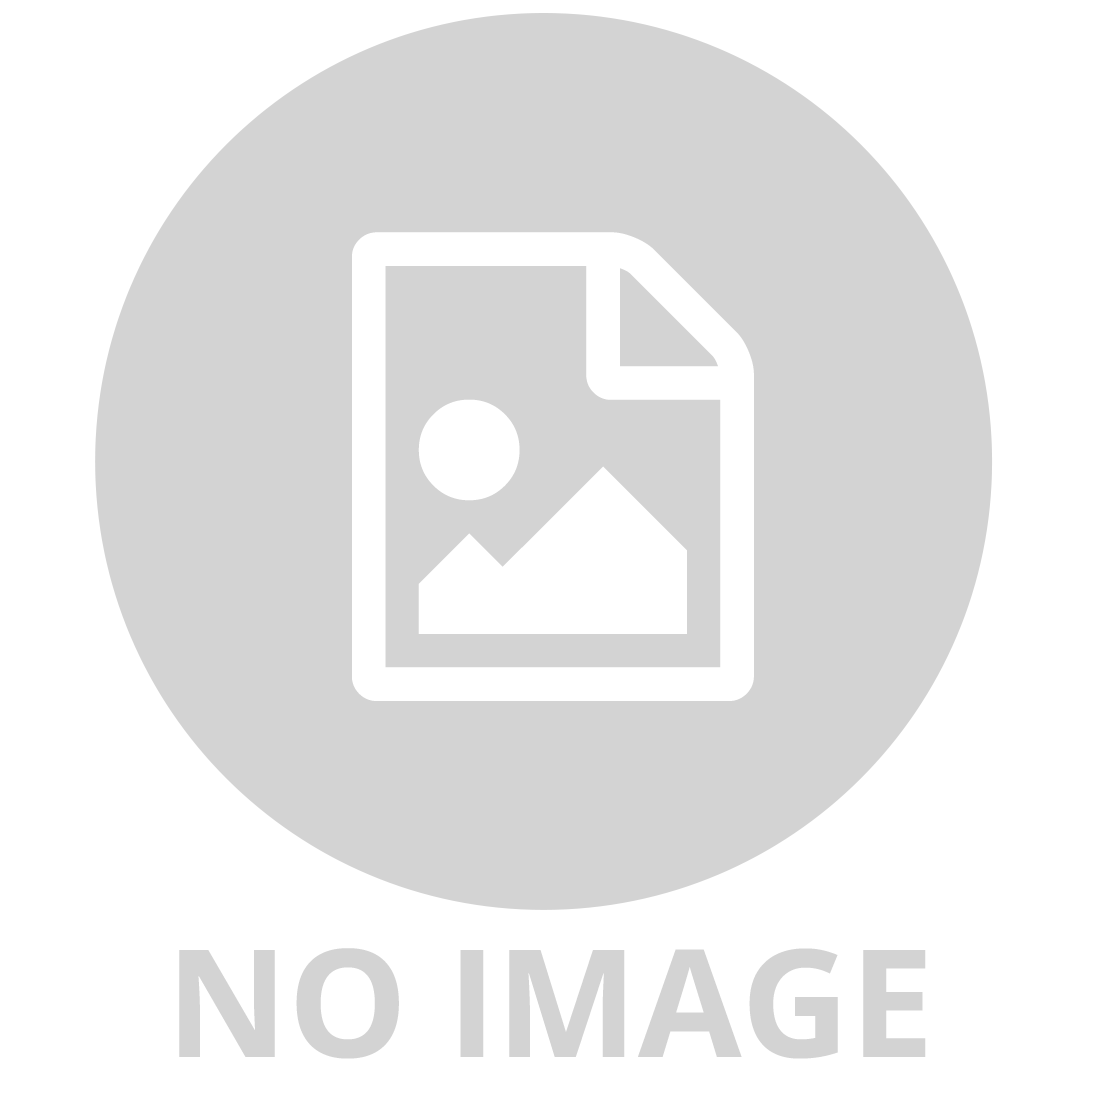 AXIAL SIMPLE LED CONTROLLER WITH LEDS